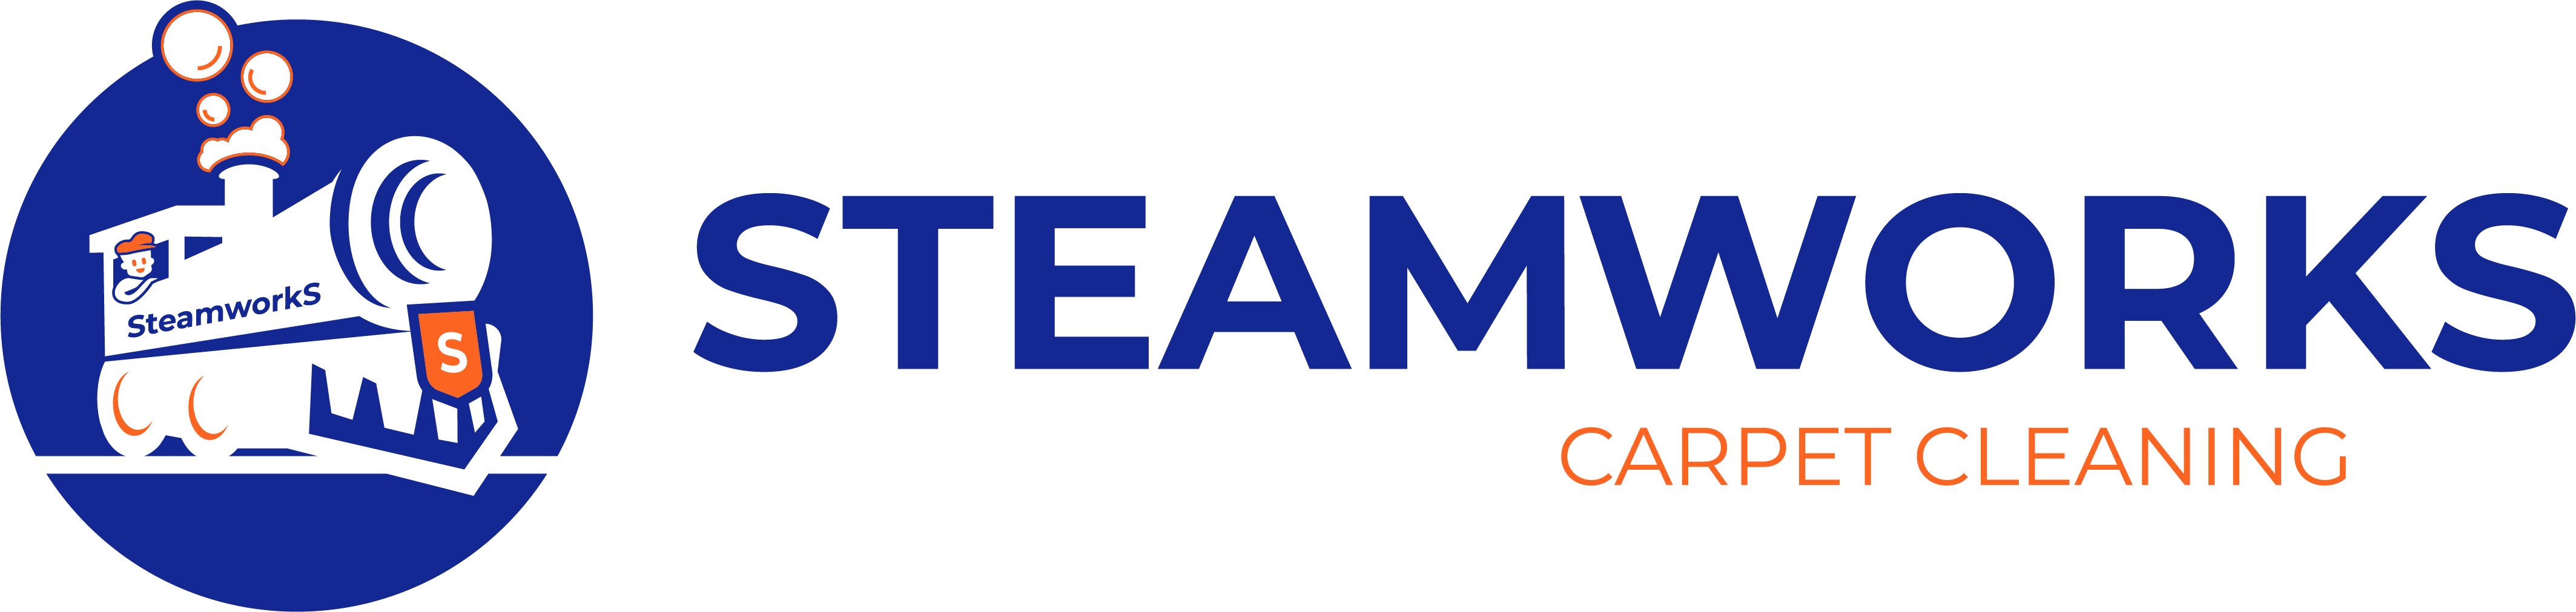 Steam Works carpet cleaning company in gainesville, florida